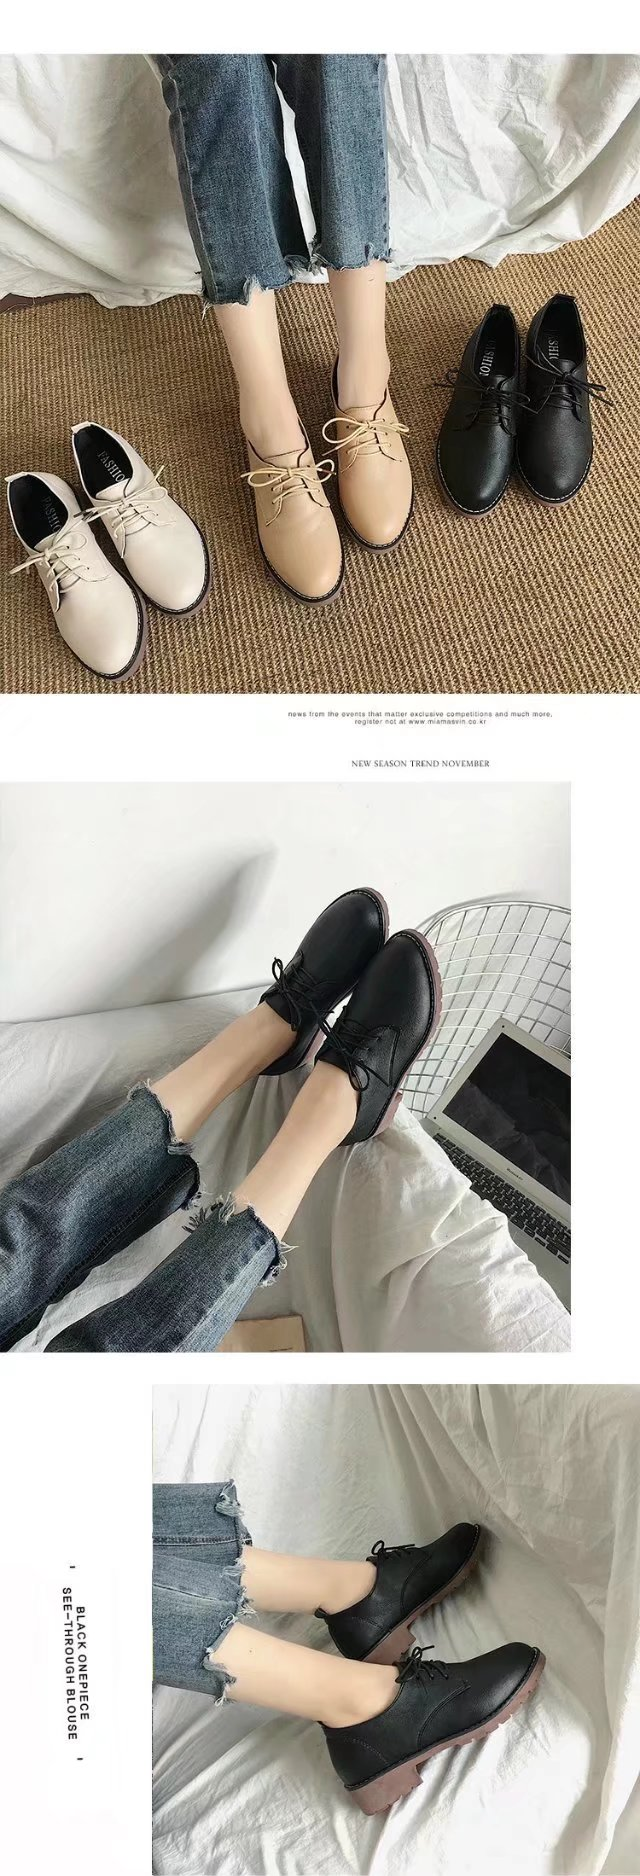 YQ-WA85 Round All-Match Tie with Coarse Small Leather Shoes Casual Shoes